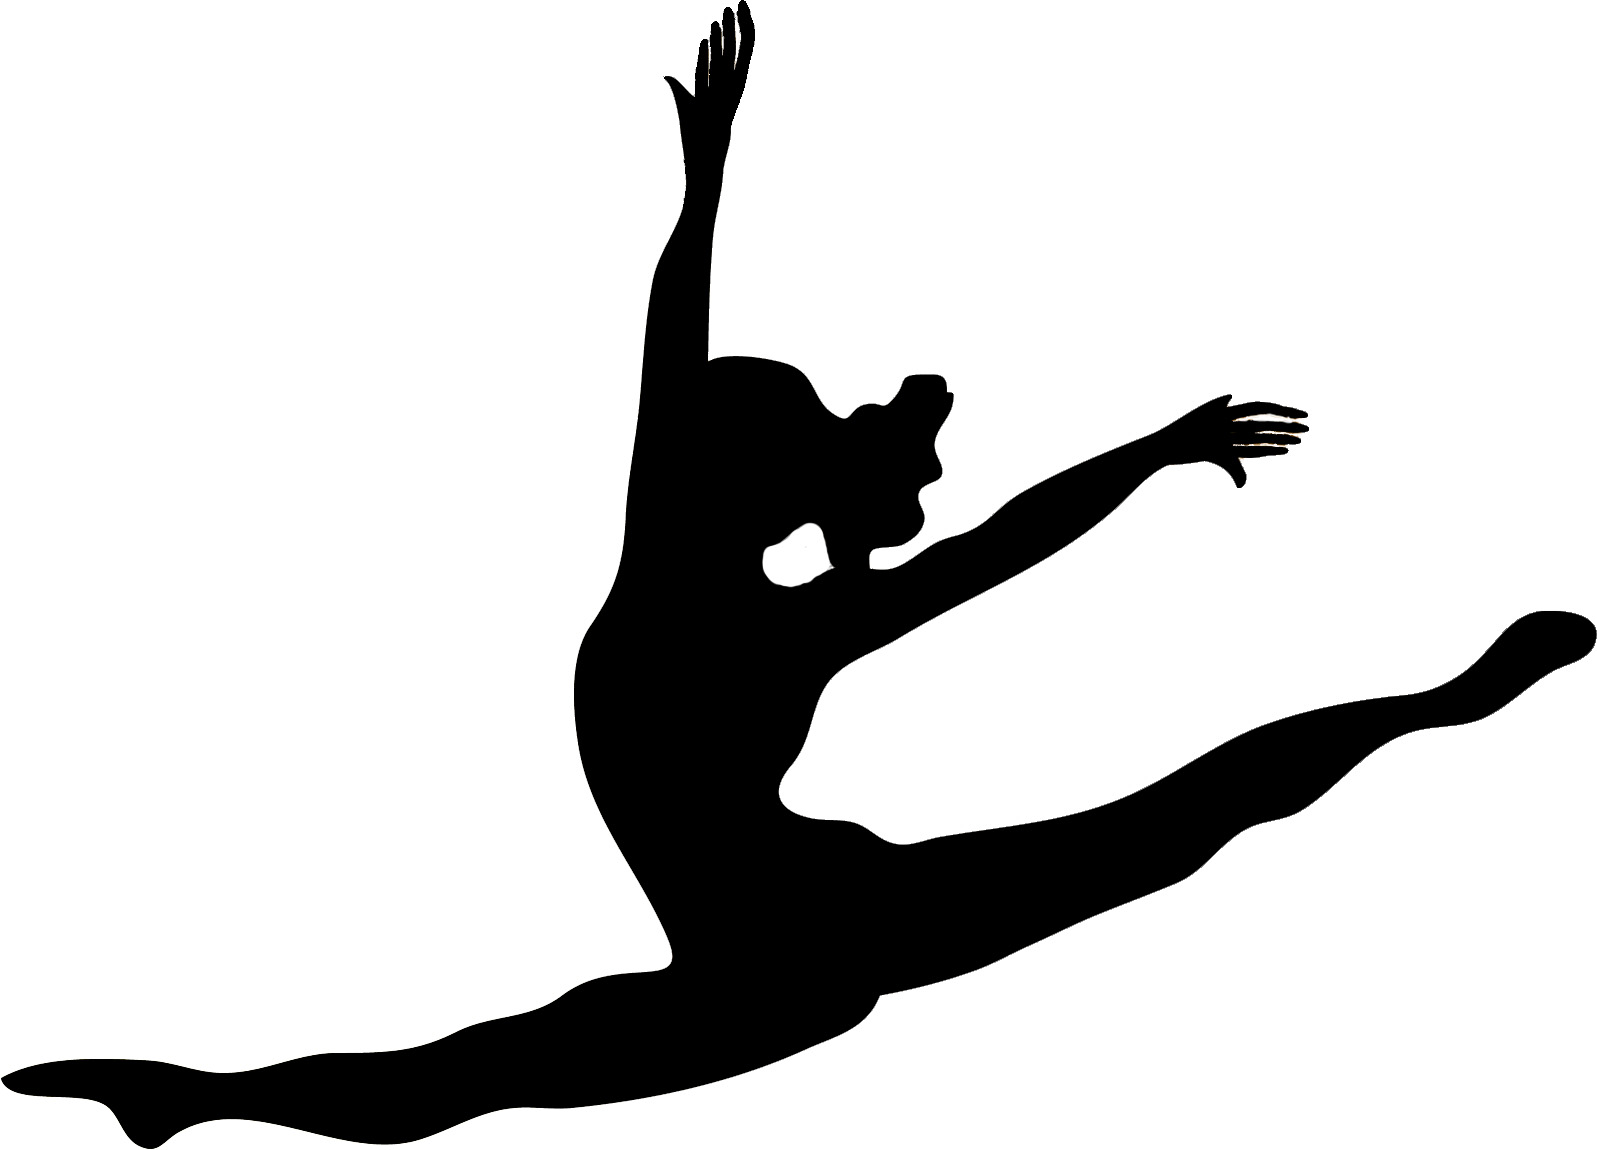 Dance line welcome. Dancer clipart danceline jpg black and white library